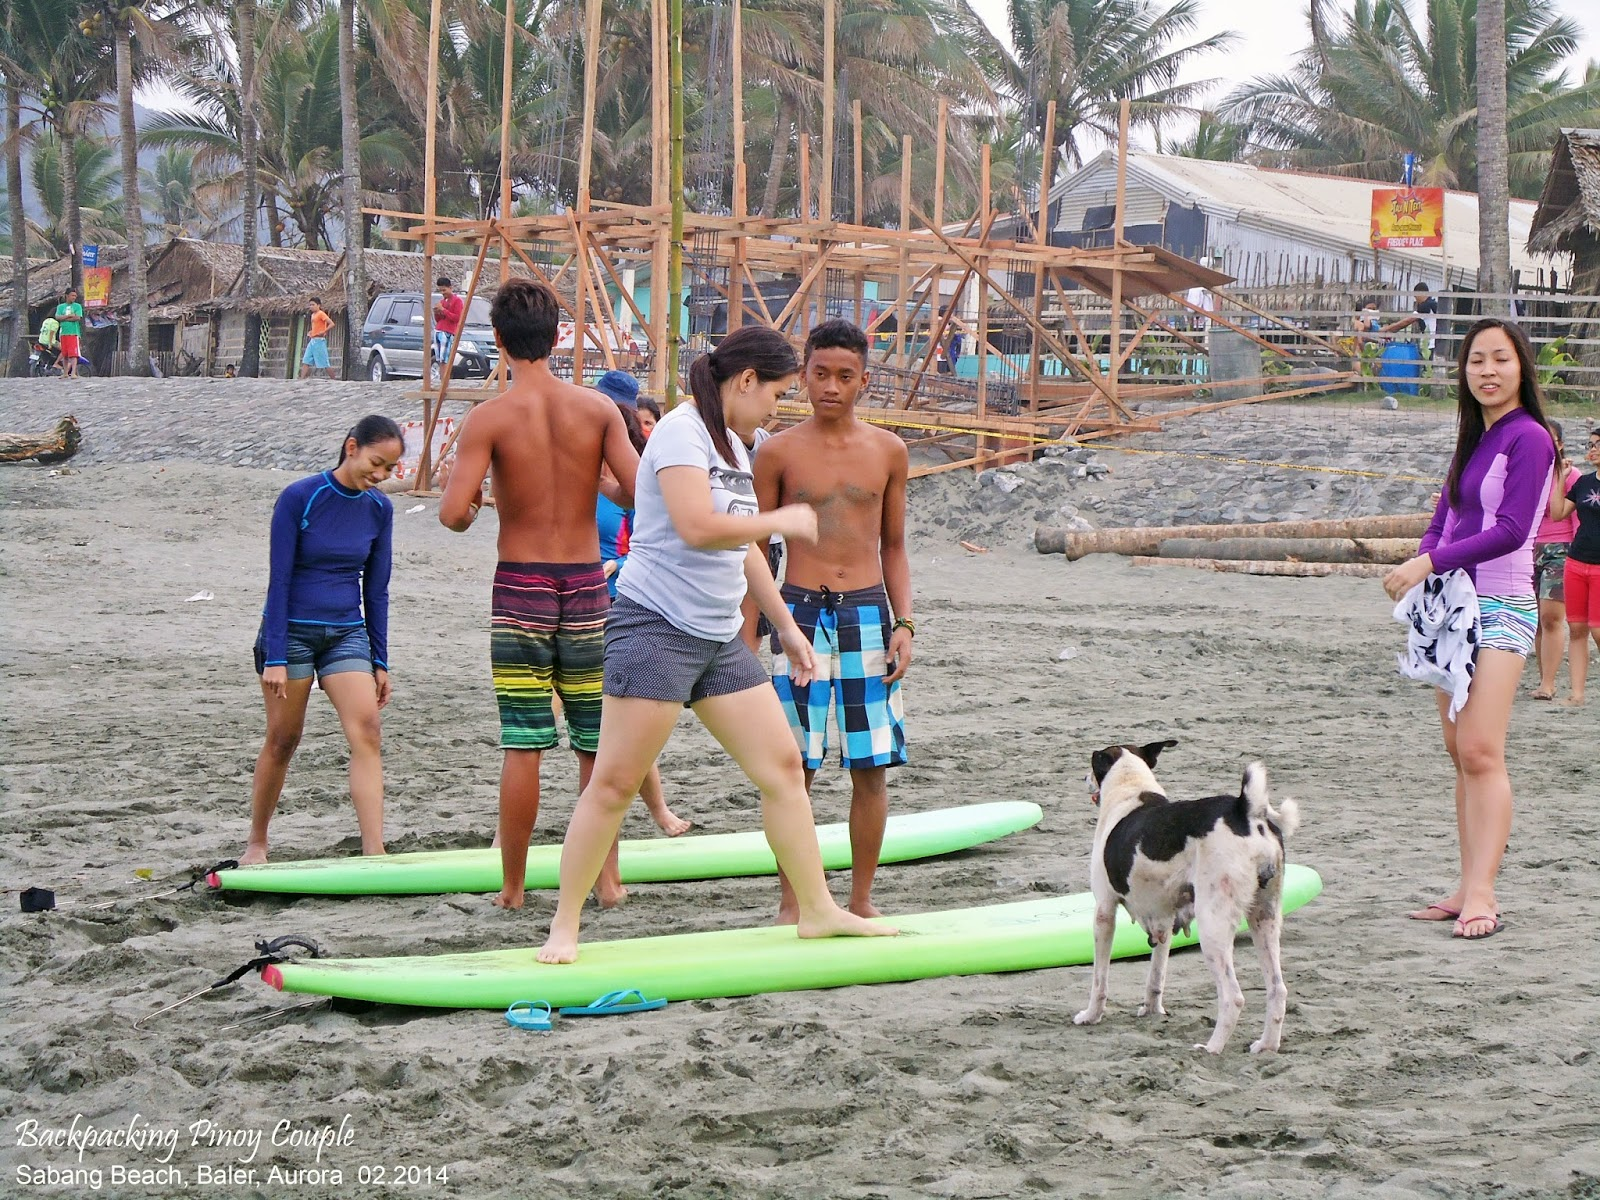 Baler, Backpacking Pinoy Couple, Philippines, It's More Fun in the Philippines, philippine travels, backpacking, backpacking philippines, how to go to aurora, how to go to baler, North Luzon, sabang beach, surfing, surfing in sabang